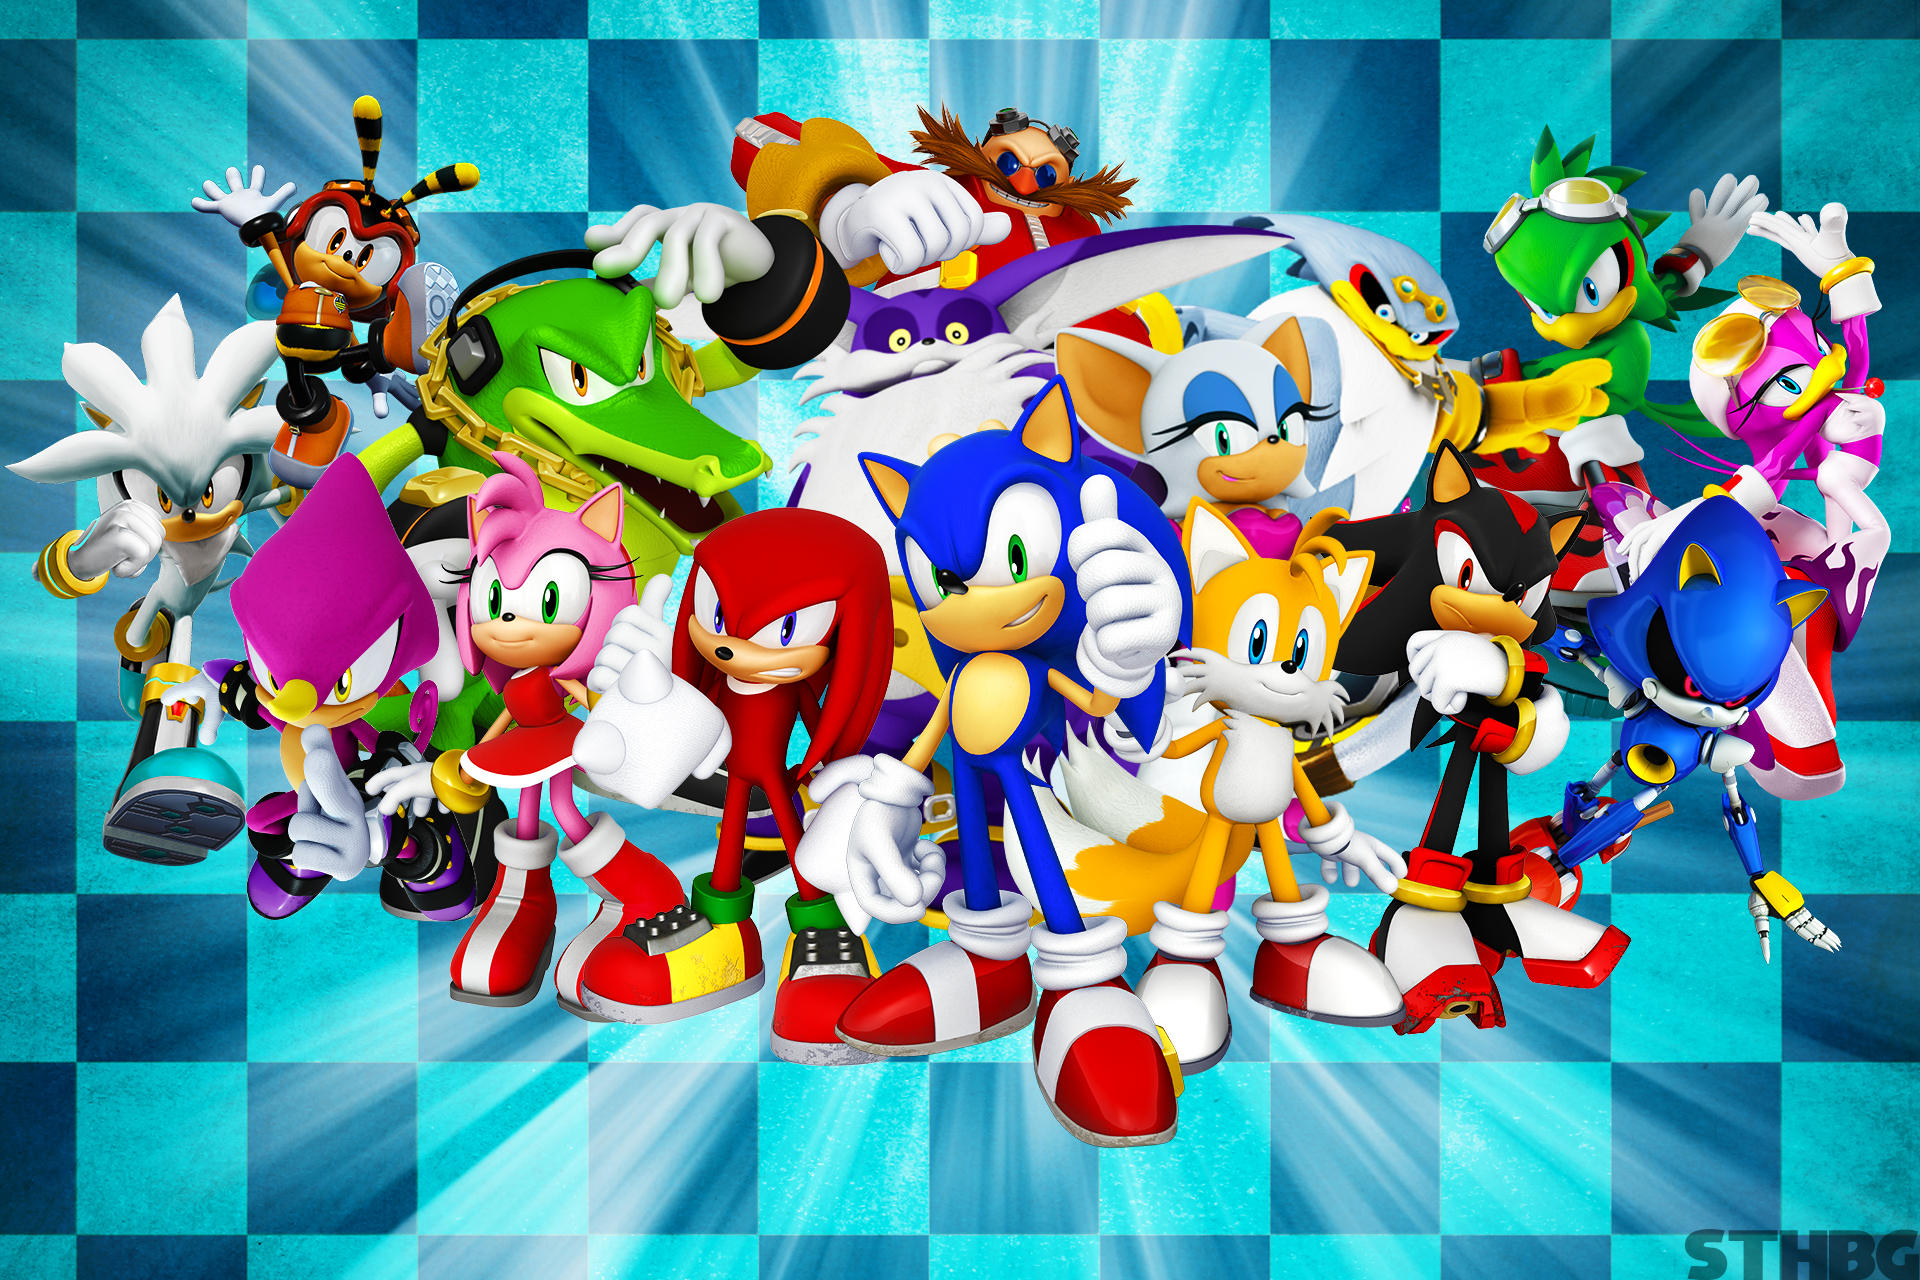 Sonic The Hedgehog And Friends Wallpaper By Sonicthehedgehogbg On